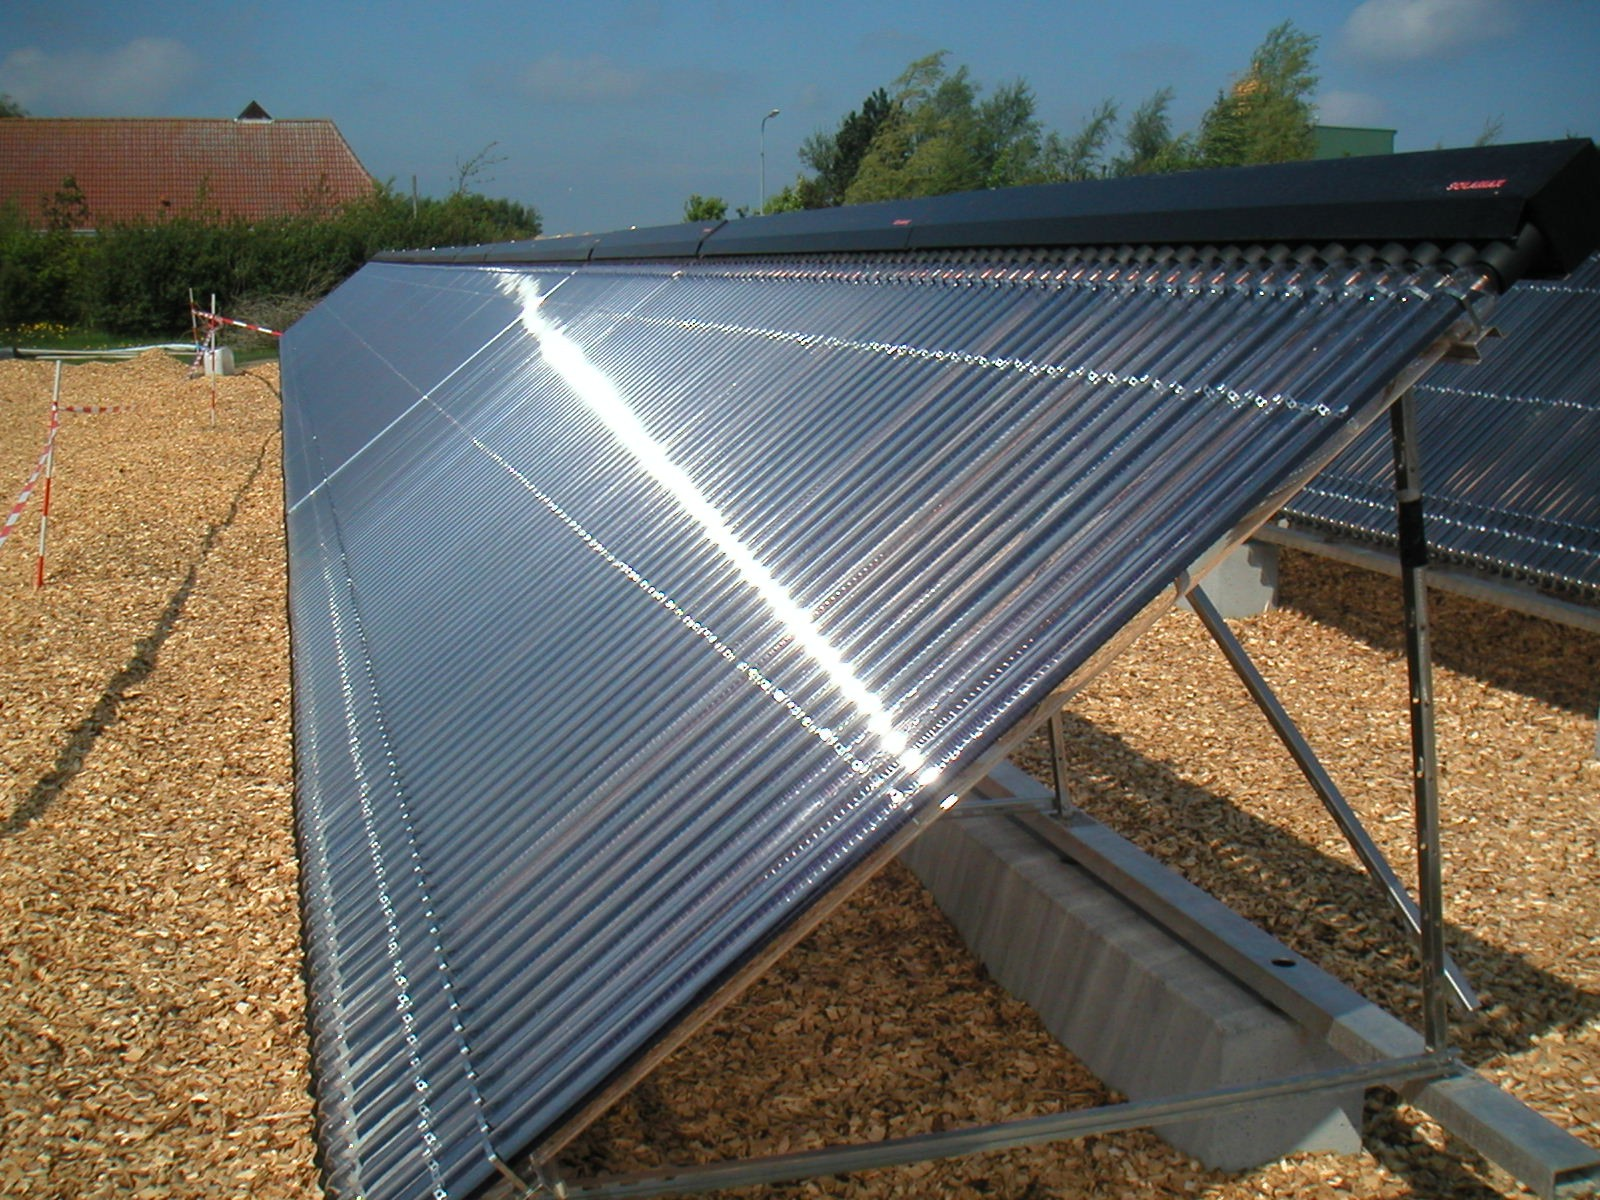 Kingspan Environmental Thermomax Solar Heat Europe – Vacuum tube collectors on building in South Africa – V2